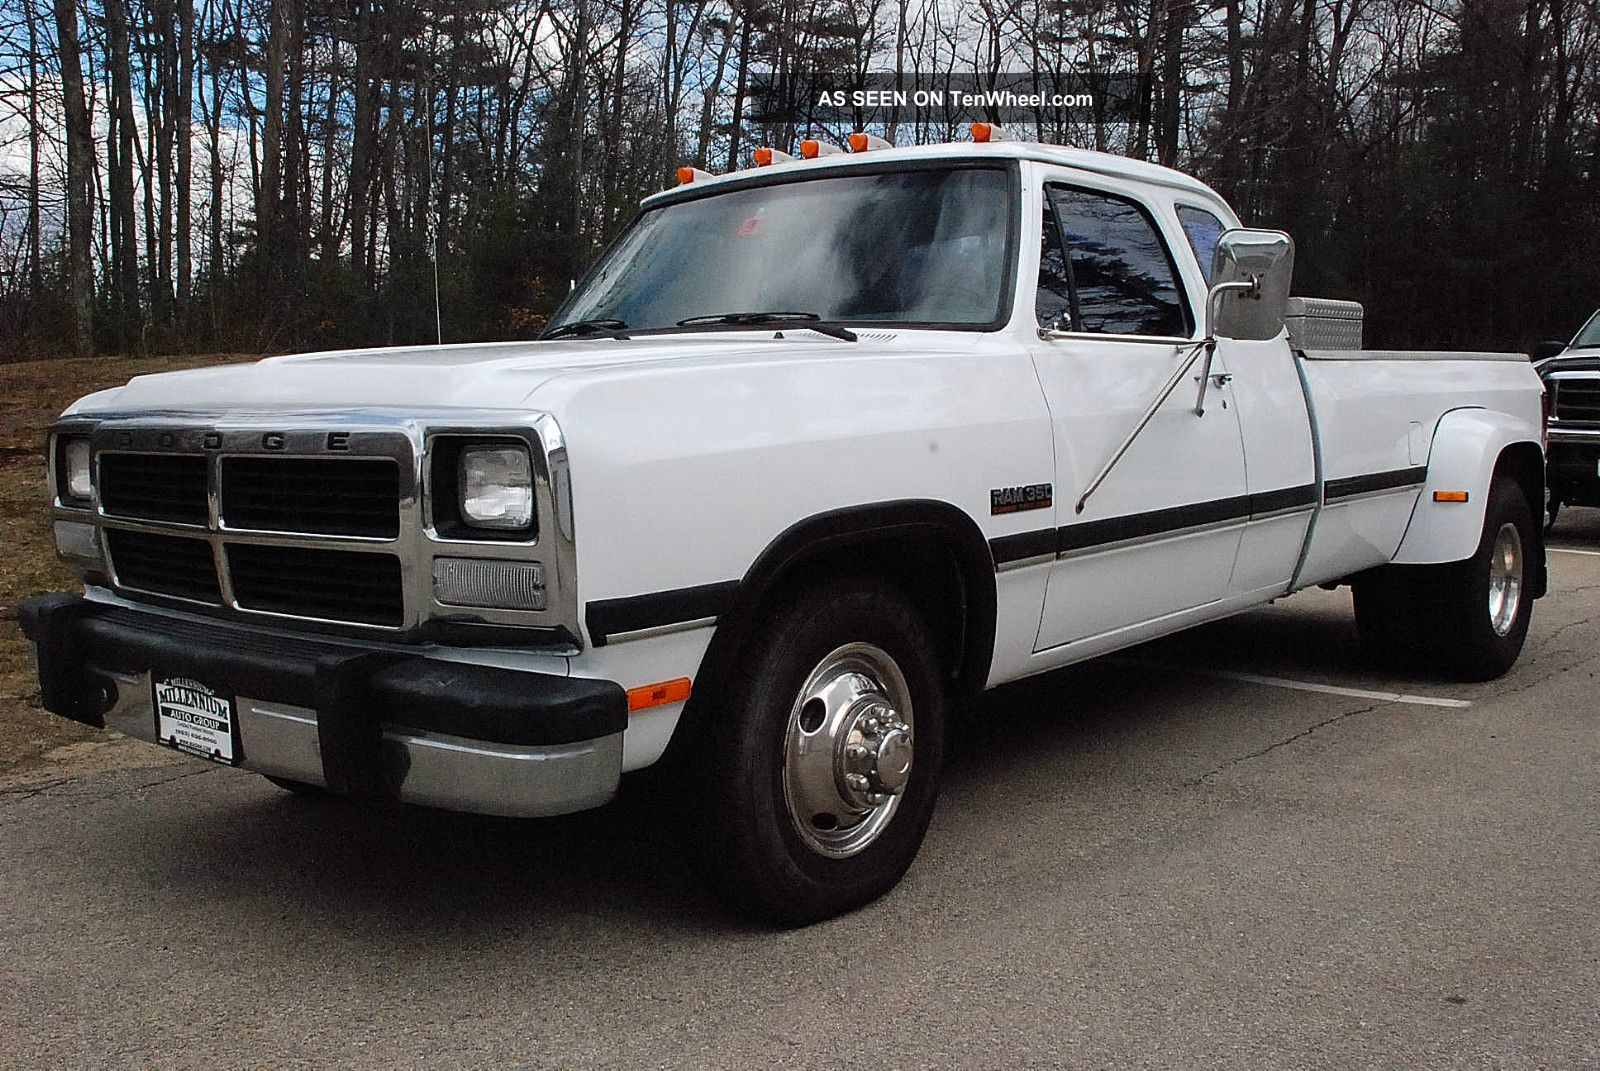 1993 dodge ram d350 extended cab 2wd dually pickup with cummins 12v turbo diesel. Black Bedroom Furniture Sets. Home Design Ideas